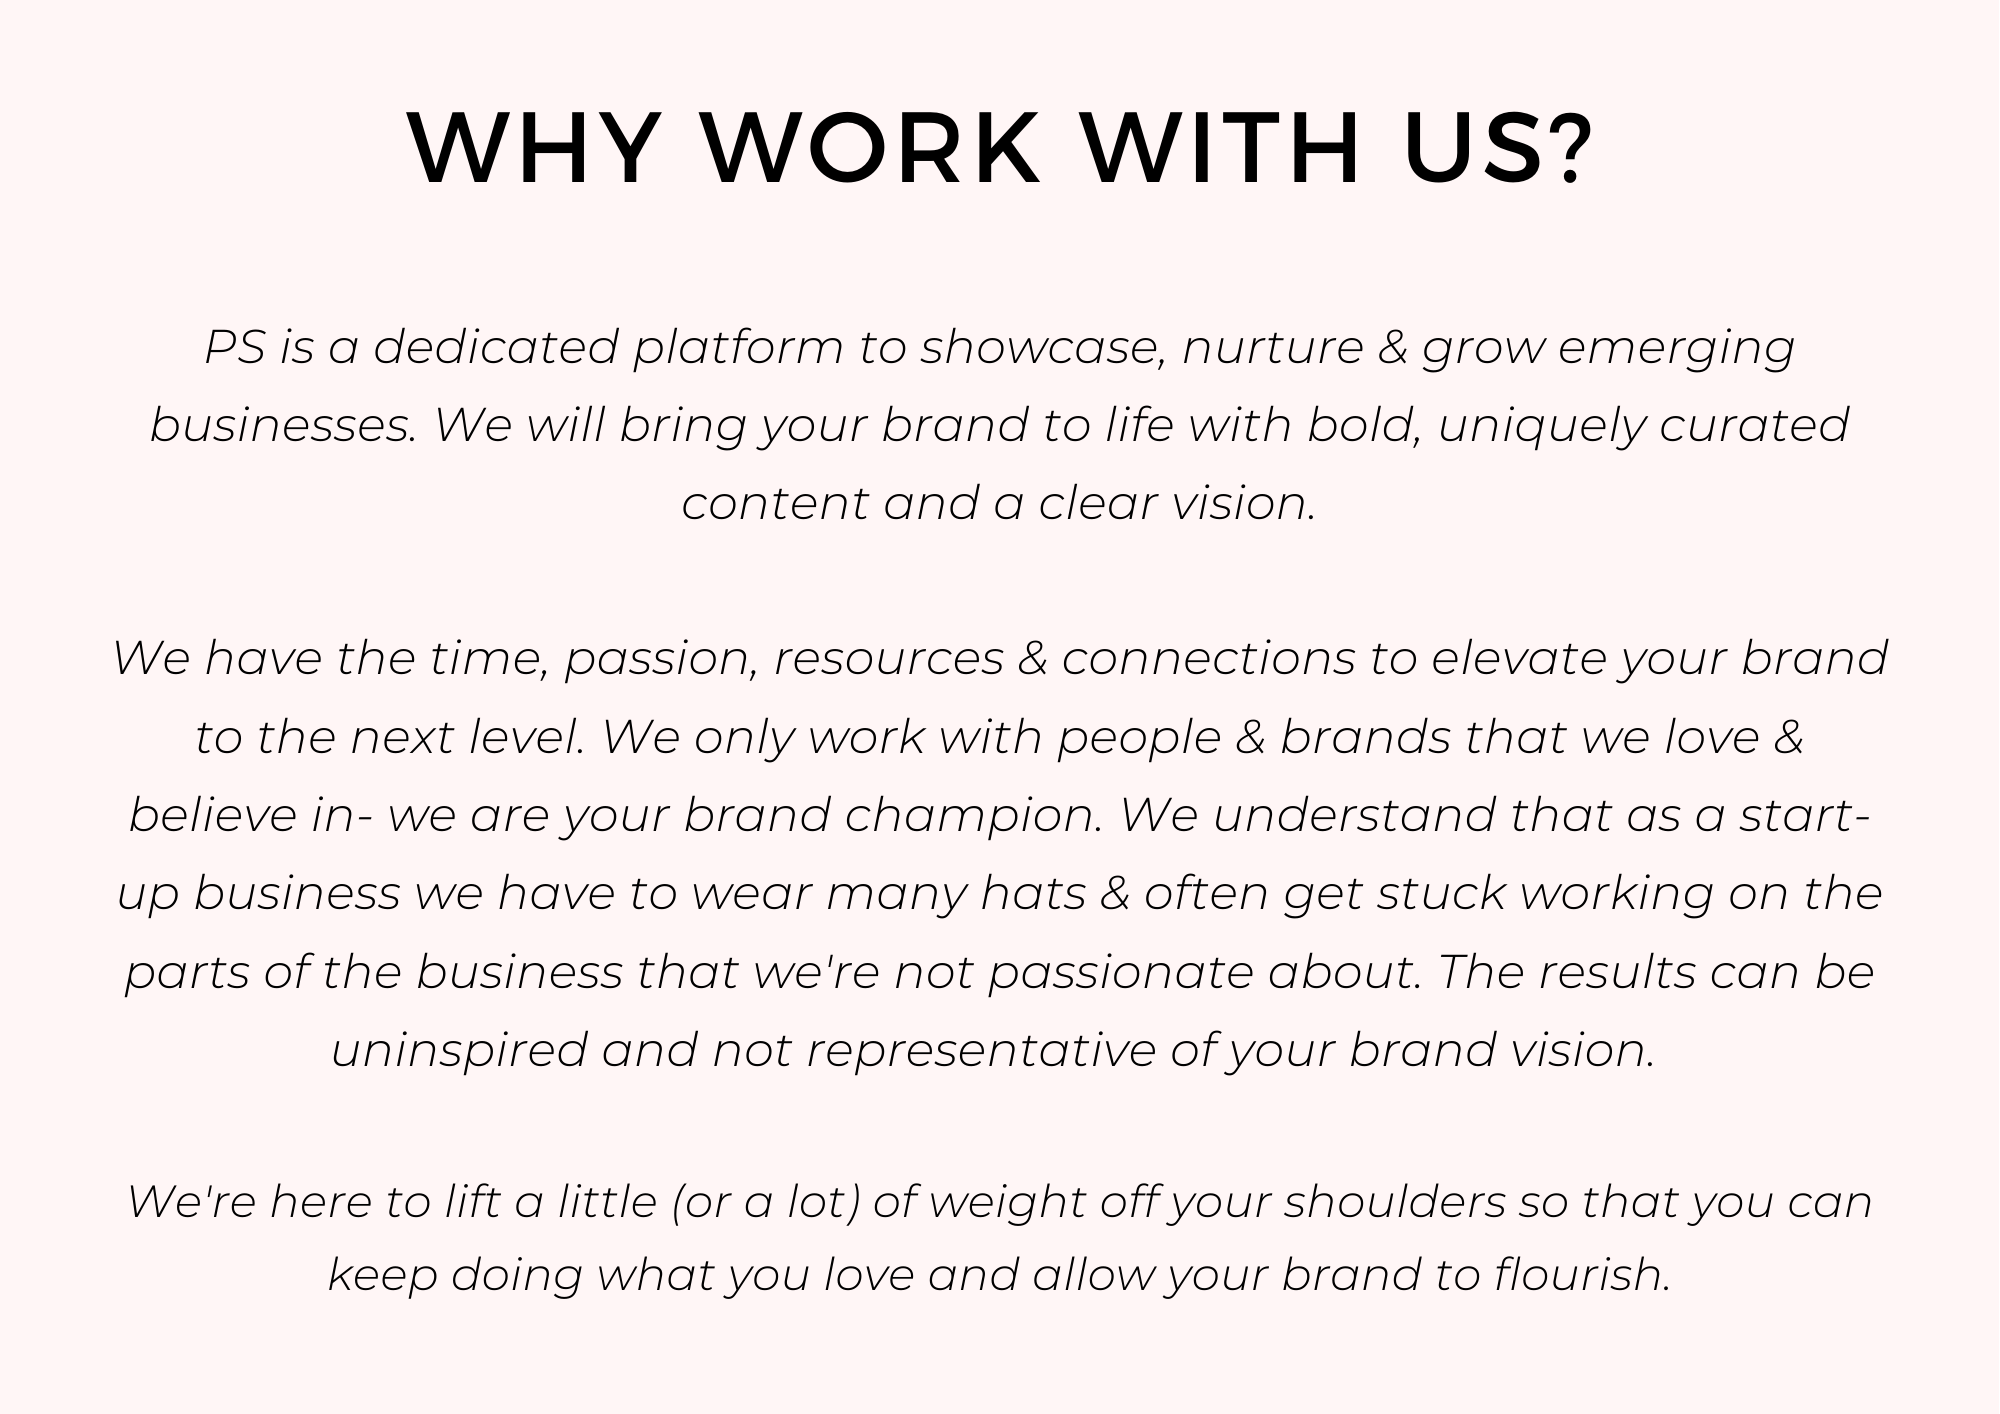 PS is a dedicated platform to showcase, nurture & grow emerging businesses. We will bring your brand to life with bold, uniquely curated content and a clear vision.